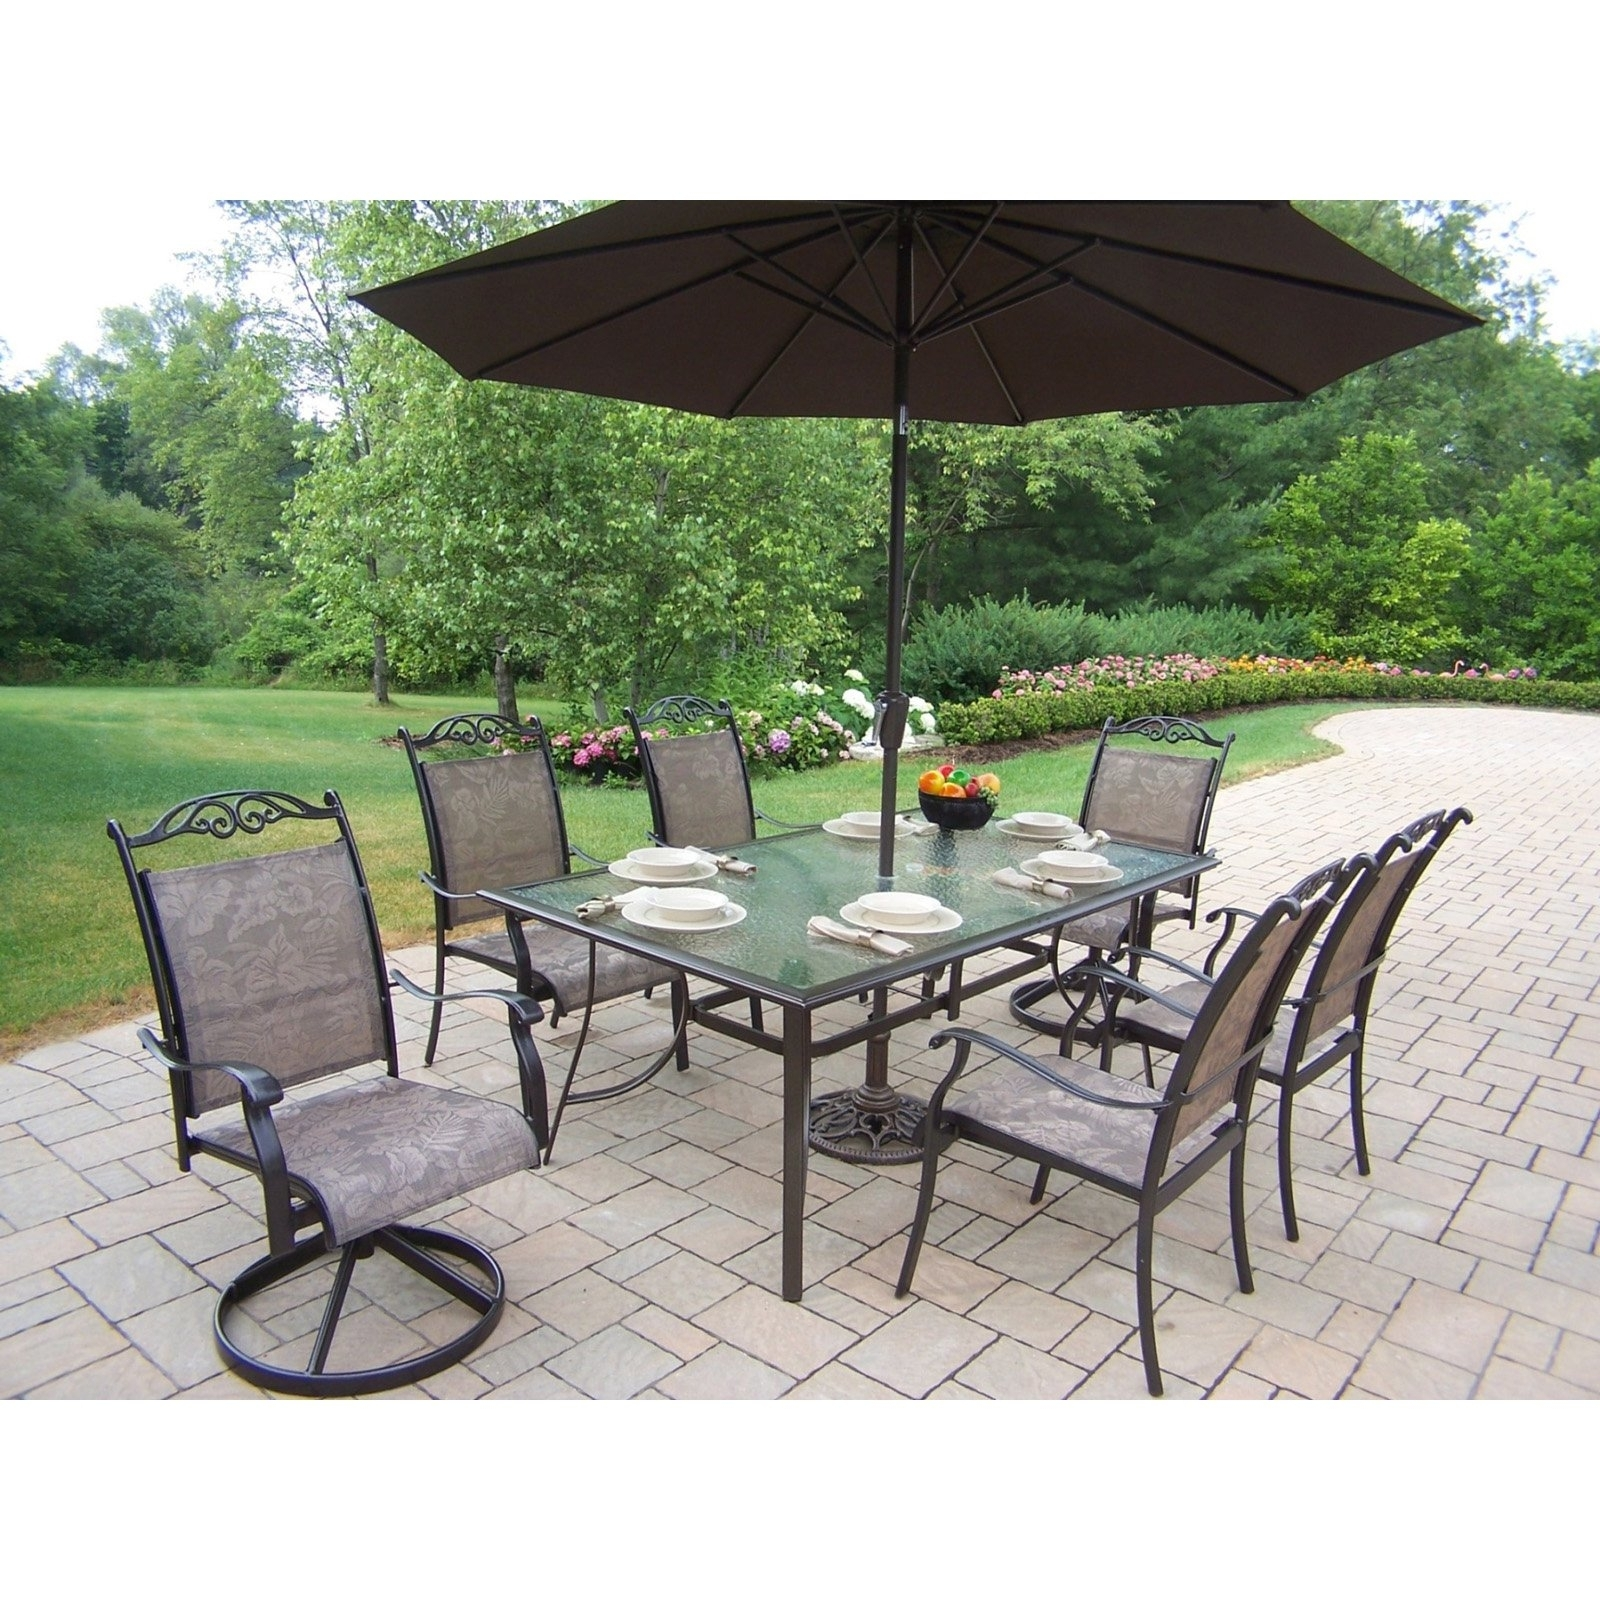 Outdoor Dining Sets With Umbrella Furniture Modern Round Patio Ideas With Regard To Well Liked Patio Table Sets With Umbrellas (View 14 of 20)